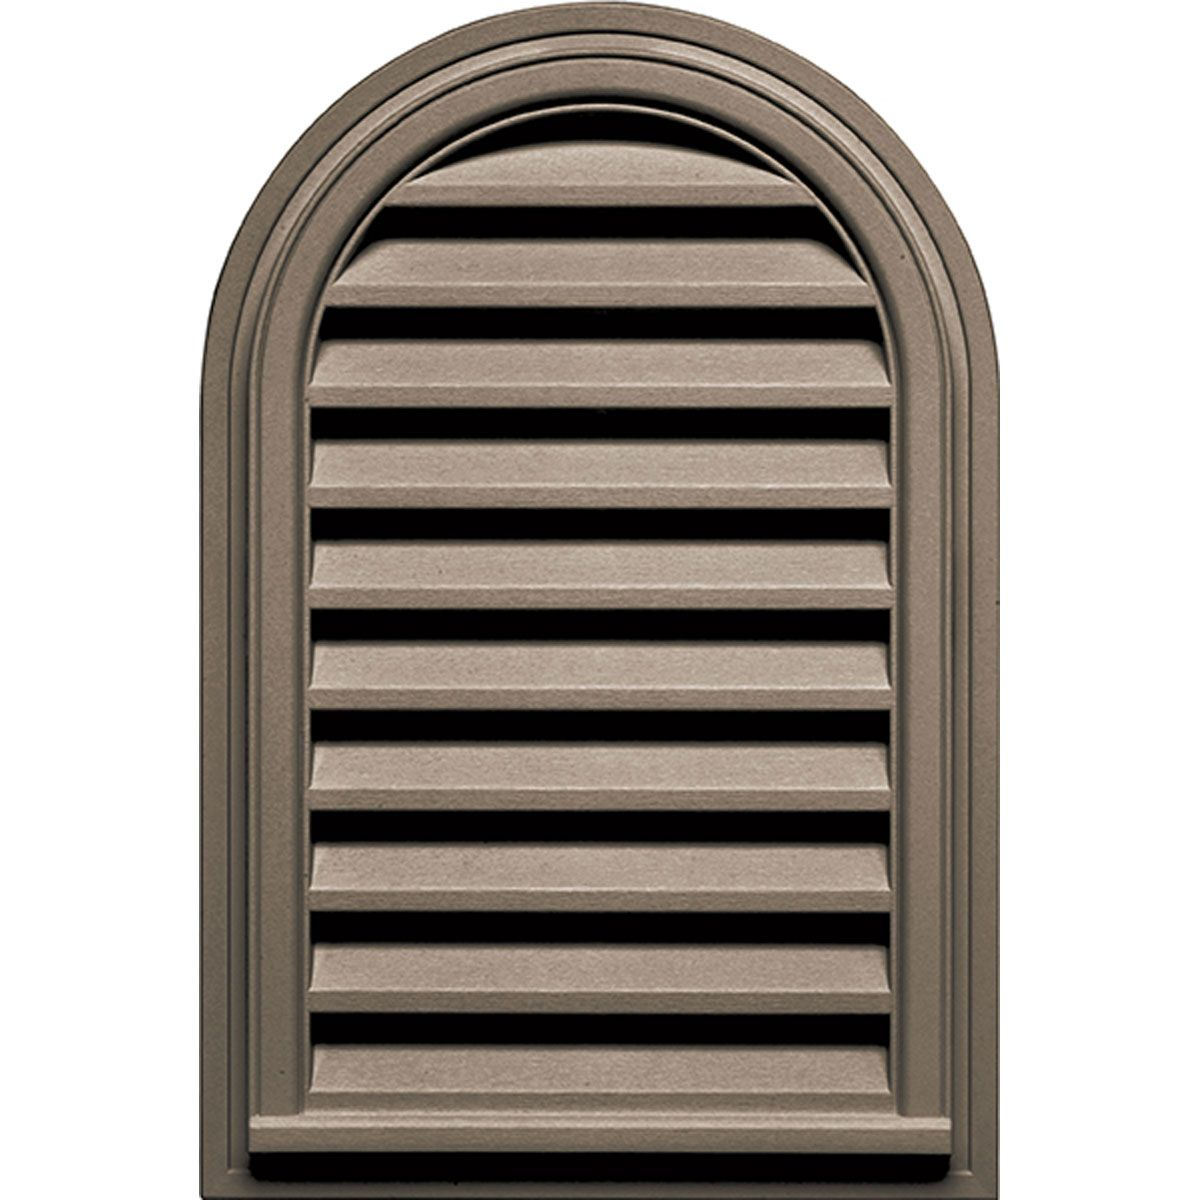 22 Inch W X 32 Inch H Cathedral Gable Vent Louver 70 Sq Inch Vent Area Gable Vents Builders Edge Top Round